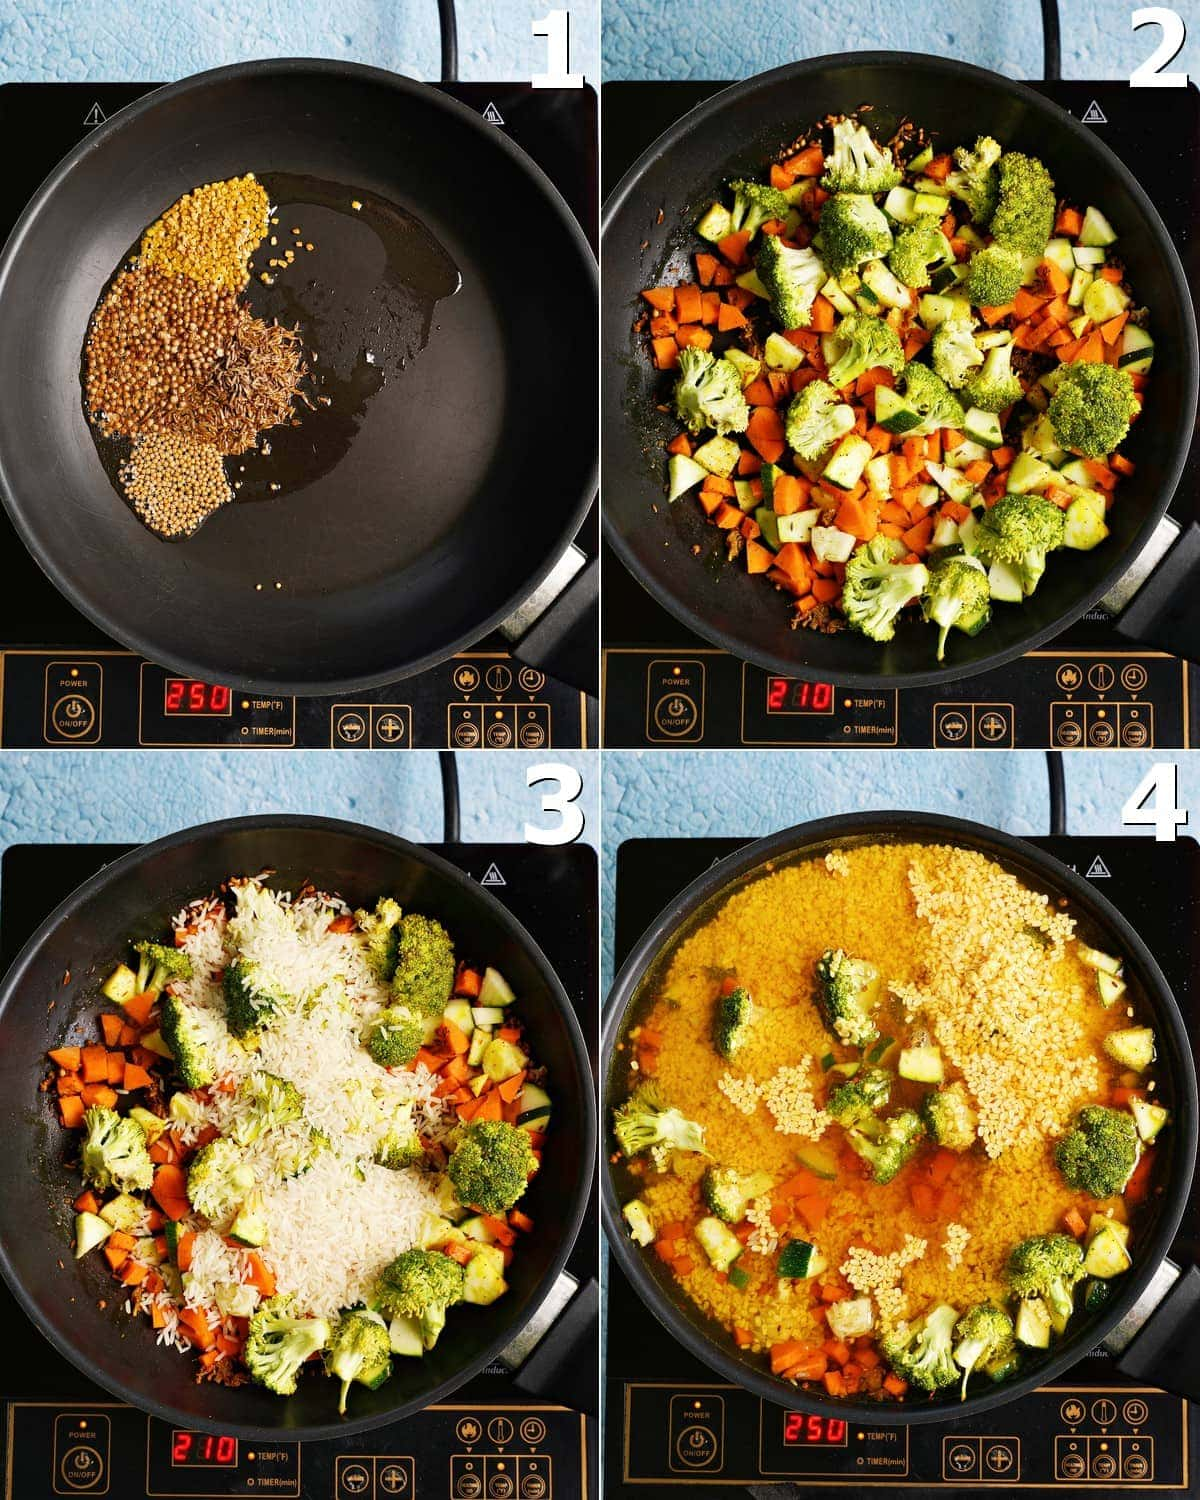 4 step-by-step photos how to cook a moong dal dish in a black pan